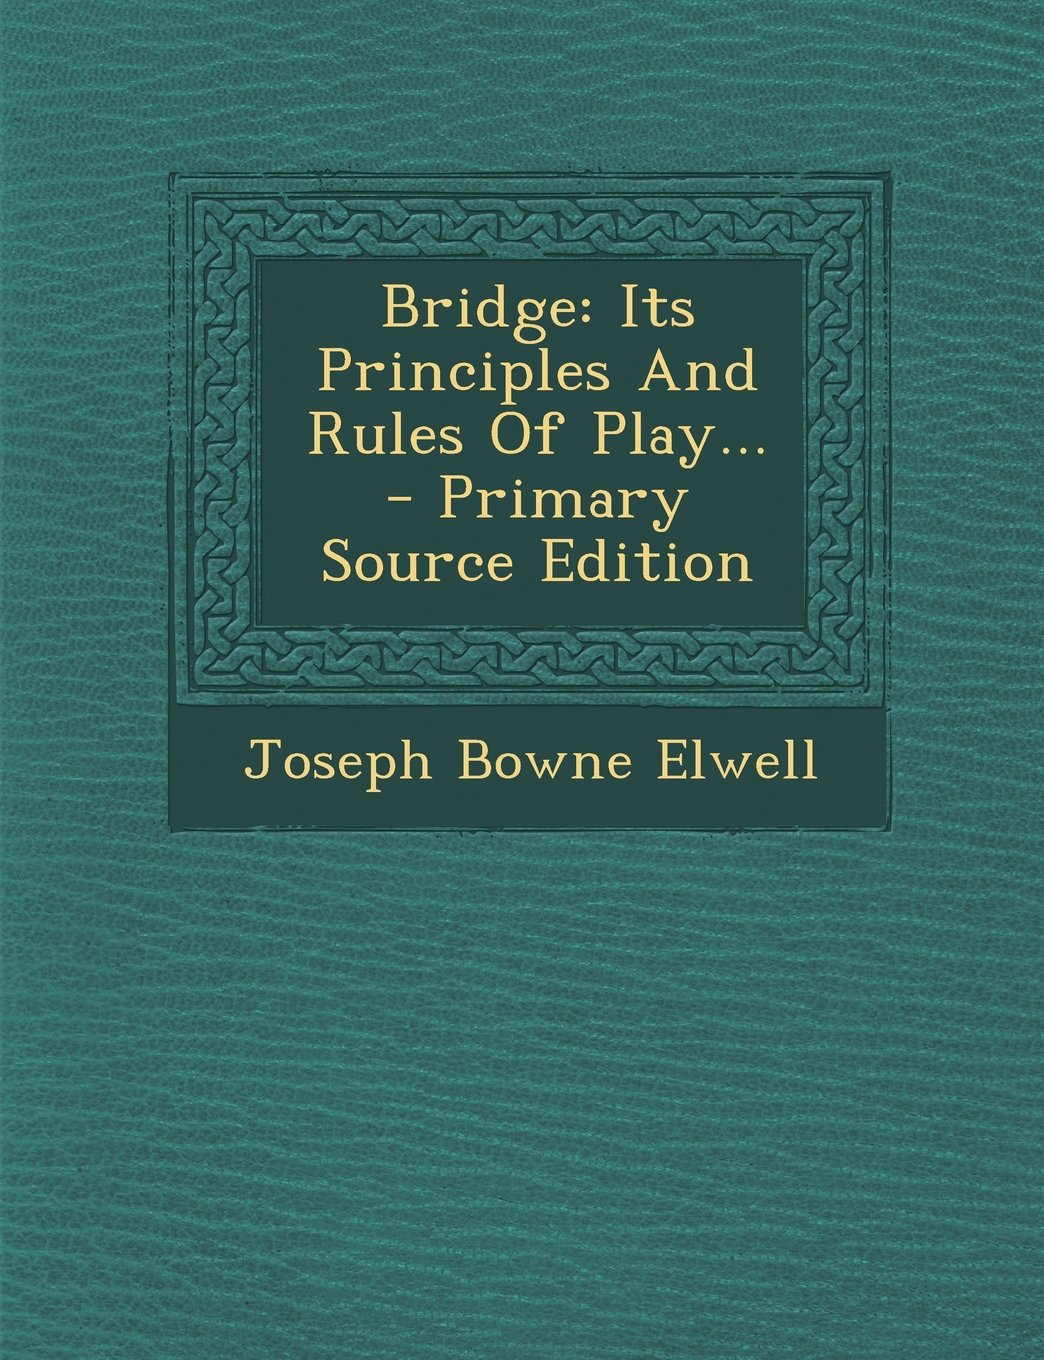 Bridge: Its Principles And Rules Of Play... - Primary Source Edition pdf epub